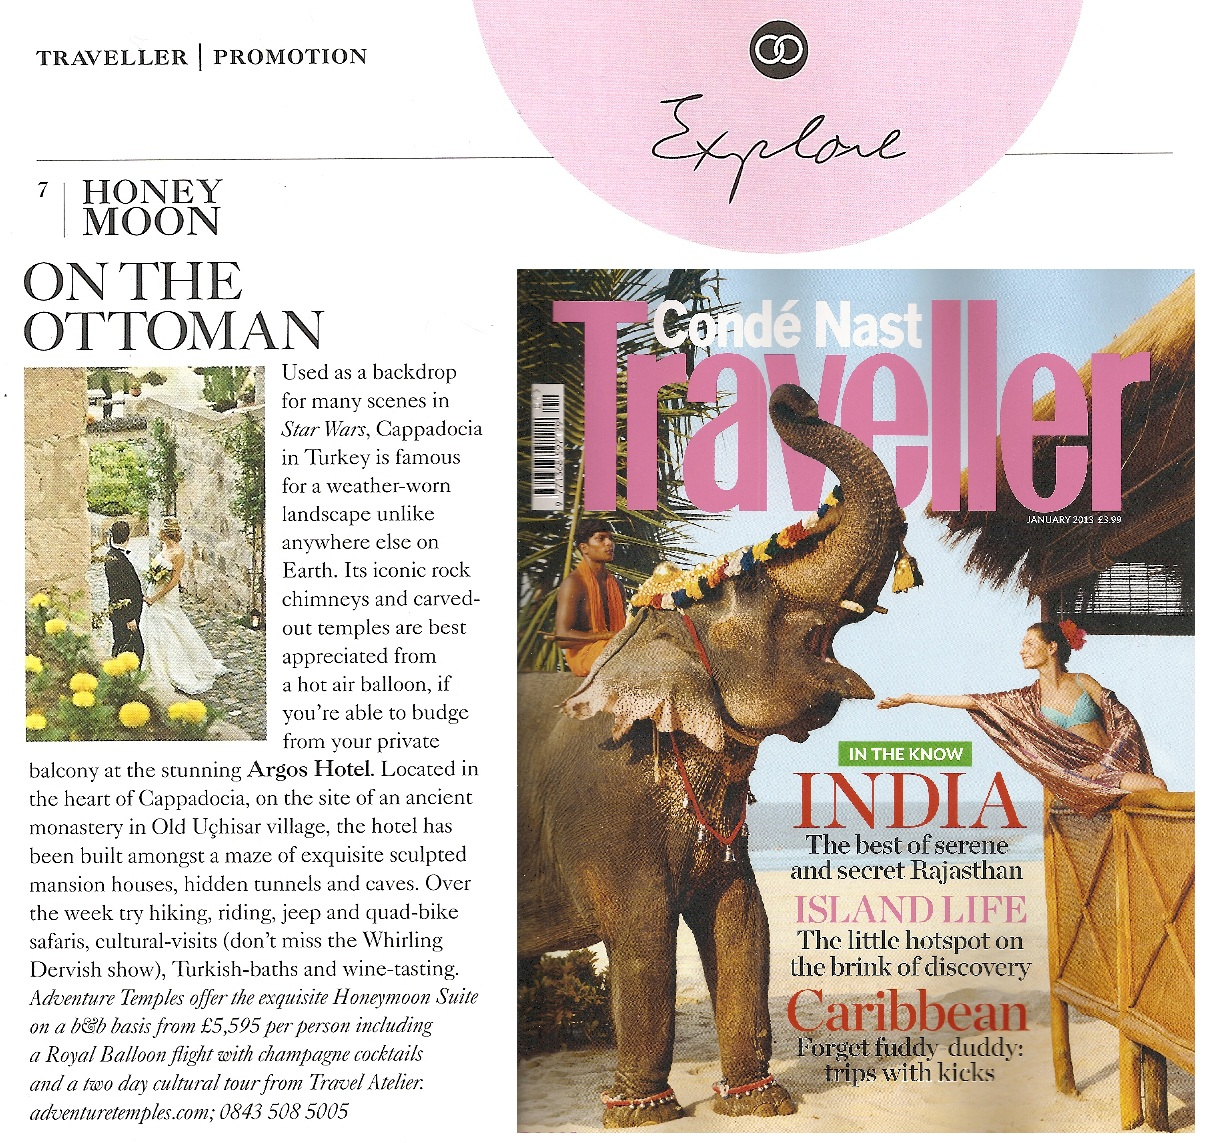 CondeNastTraveller Honeymoon Feature Jan 2013